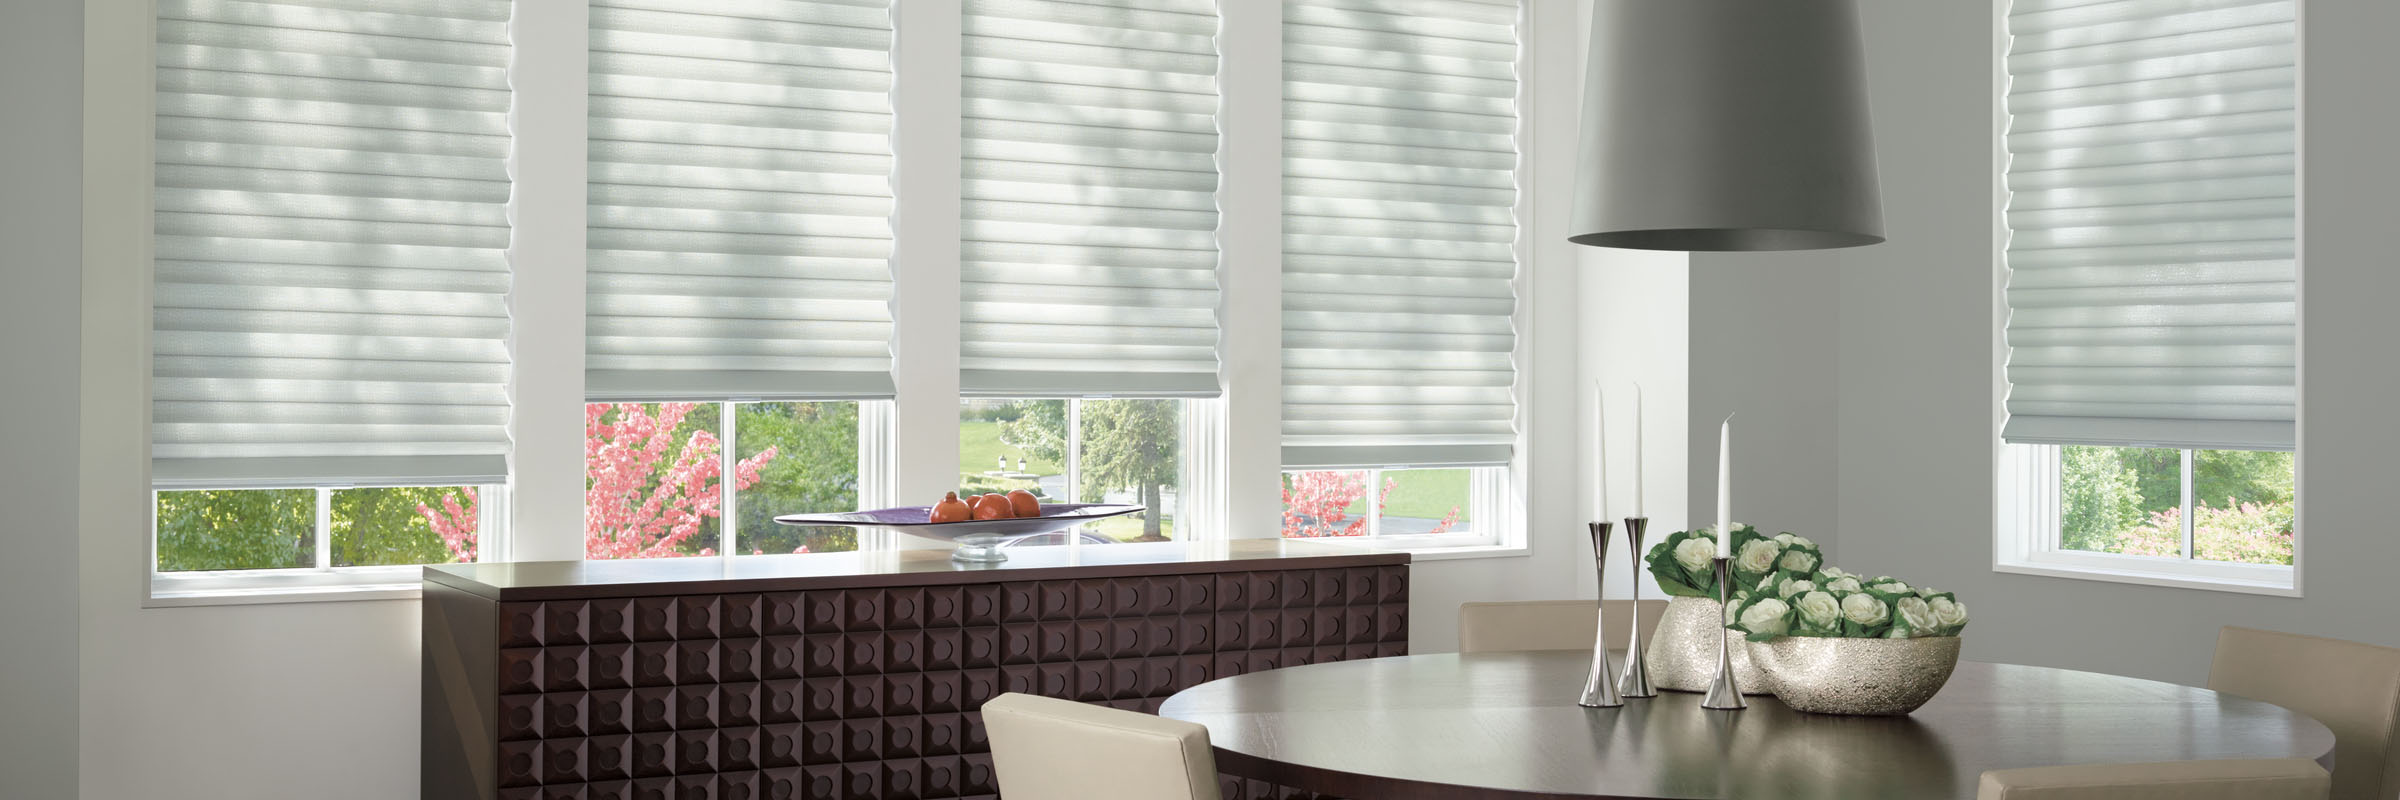 like products that window ella for glide vertical systems blinds a areas are windows commonly sunshade blind most panel coverings and versatile premium high large used lifestyle or traffic